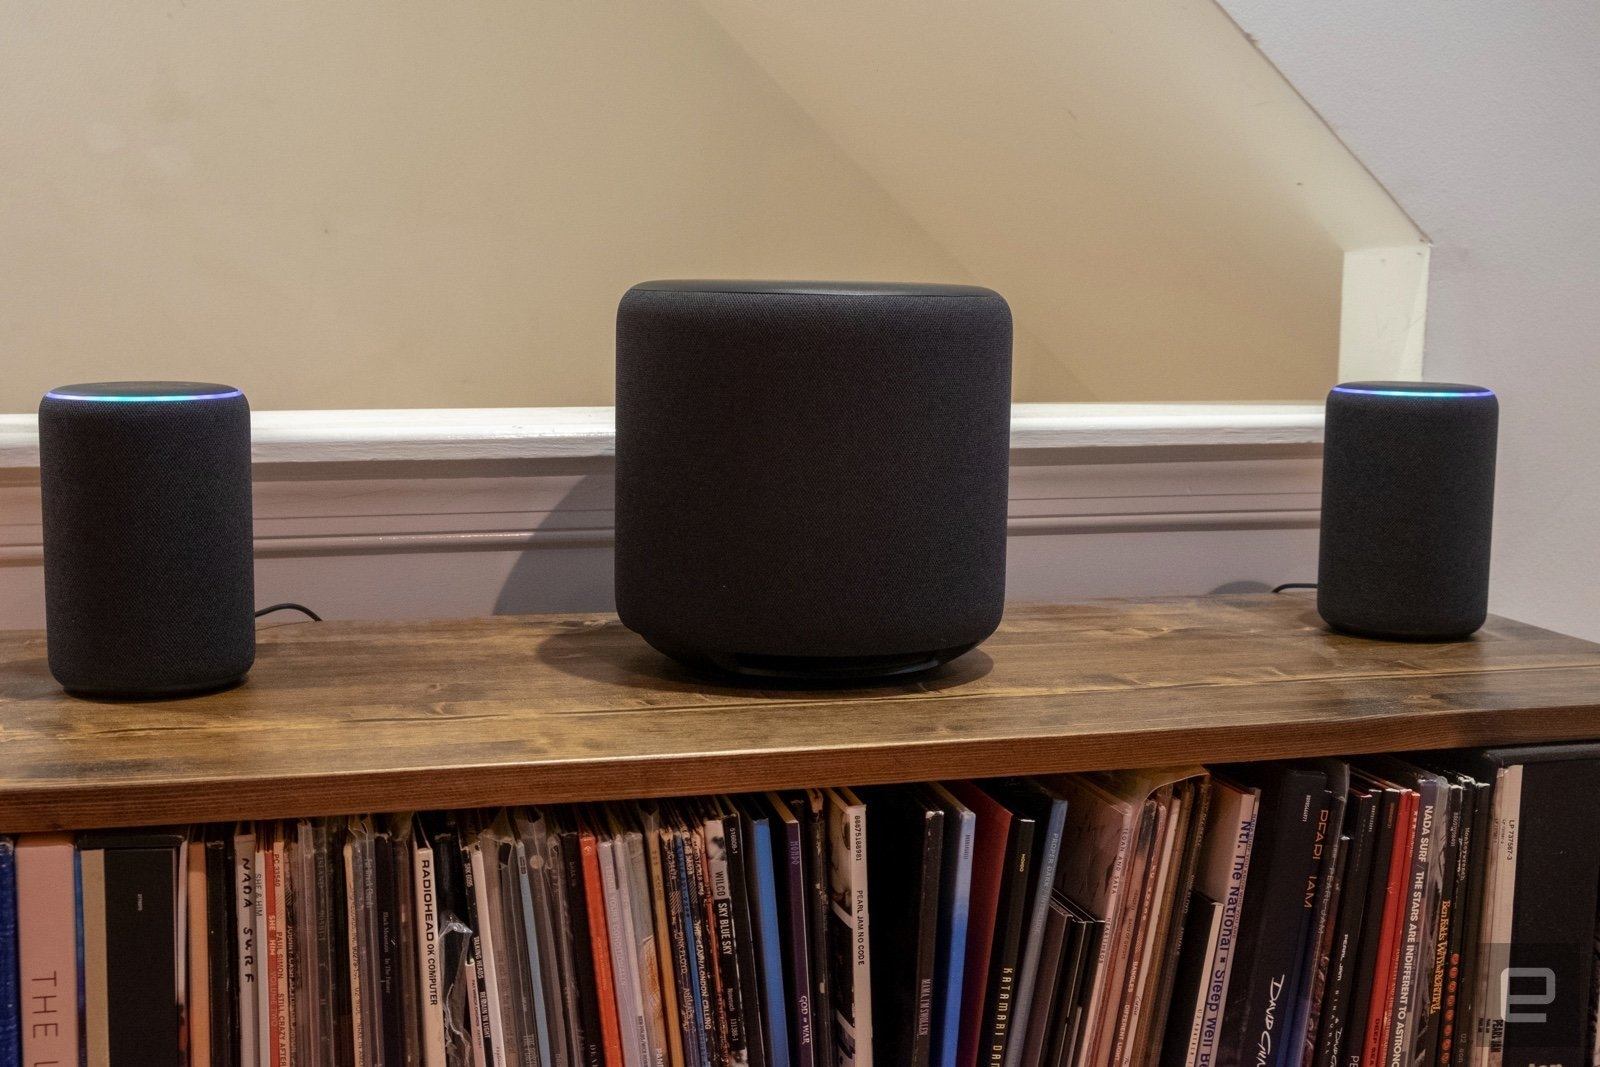 Amazon reports over 100 million Alexa devices sold | DeviceDaily.com